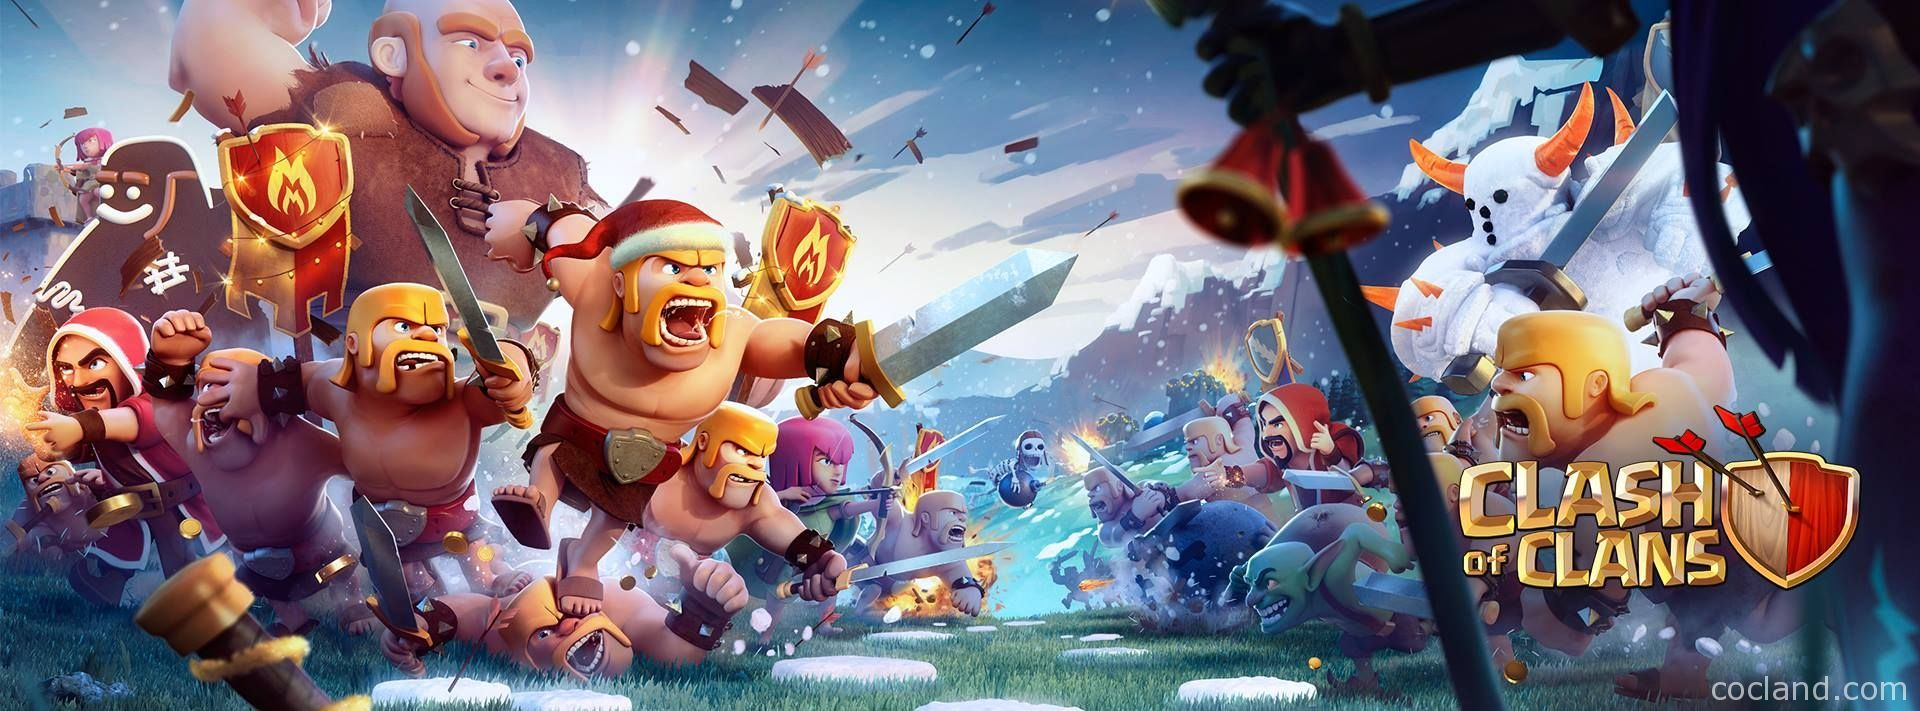 Clash Of Clans Wallpaper Free Large Images Game Clash Of Clans